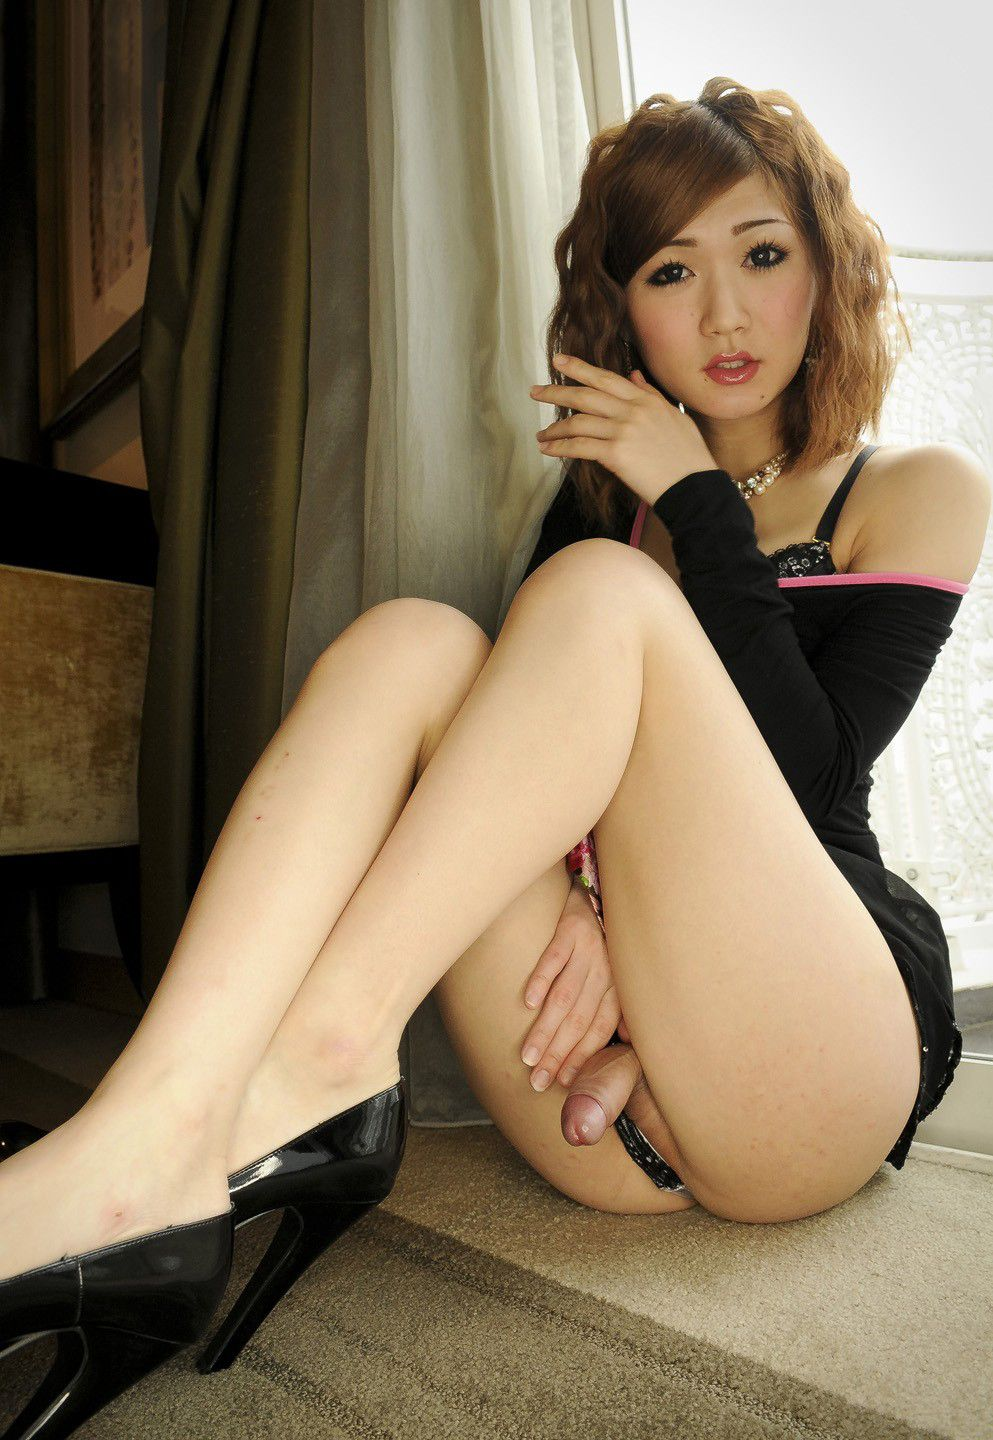 Pics Of Ladyboy Nancy